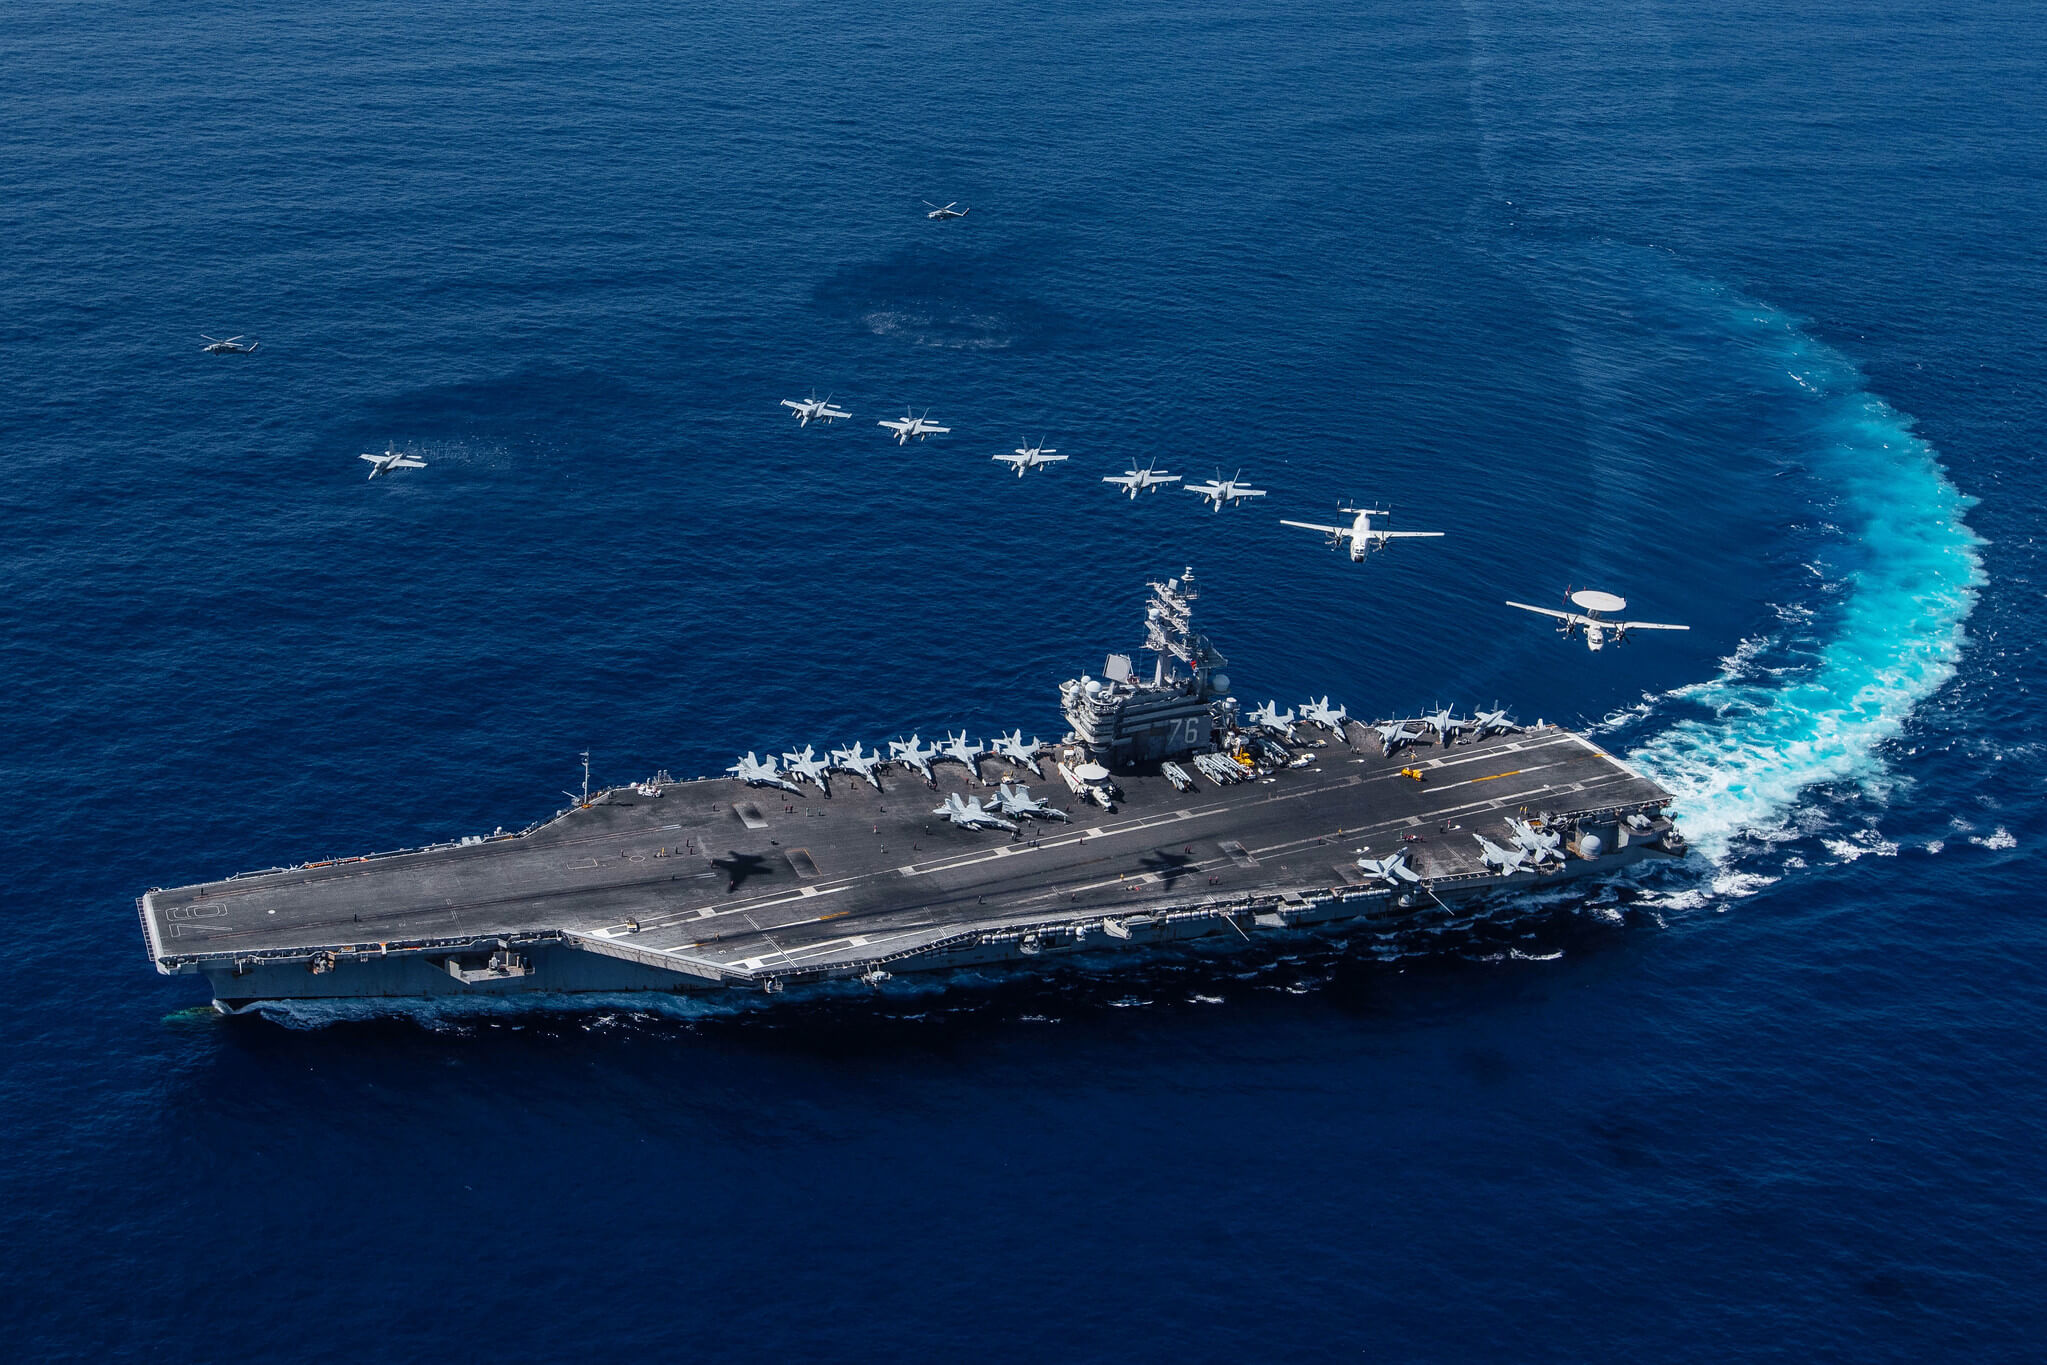 Yinhong - Multiple aircraft 5 fly in formation over the Navy's forward-deployed aircraft carrier USS Ronald Reagan in the South China Sea in October 2019. U.S. Pacific Fleet